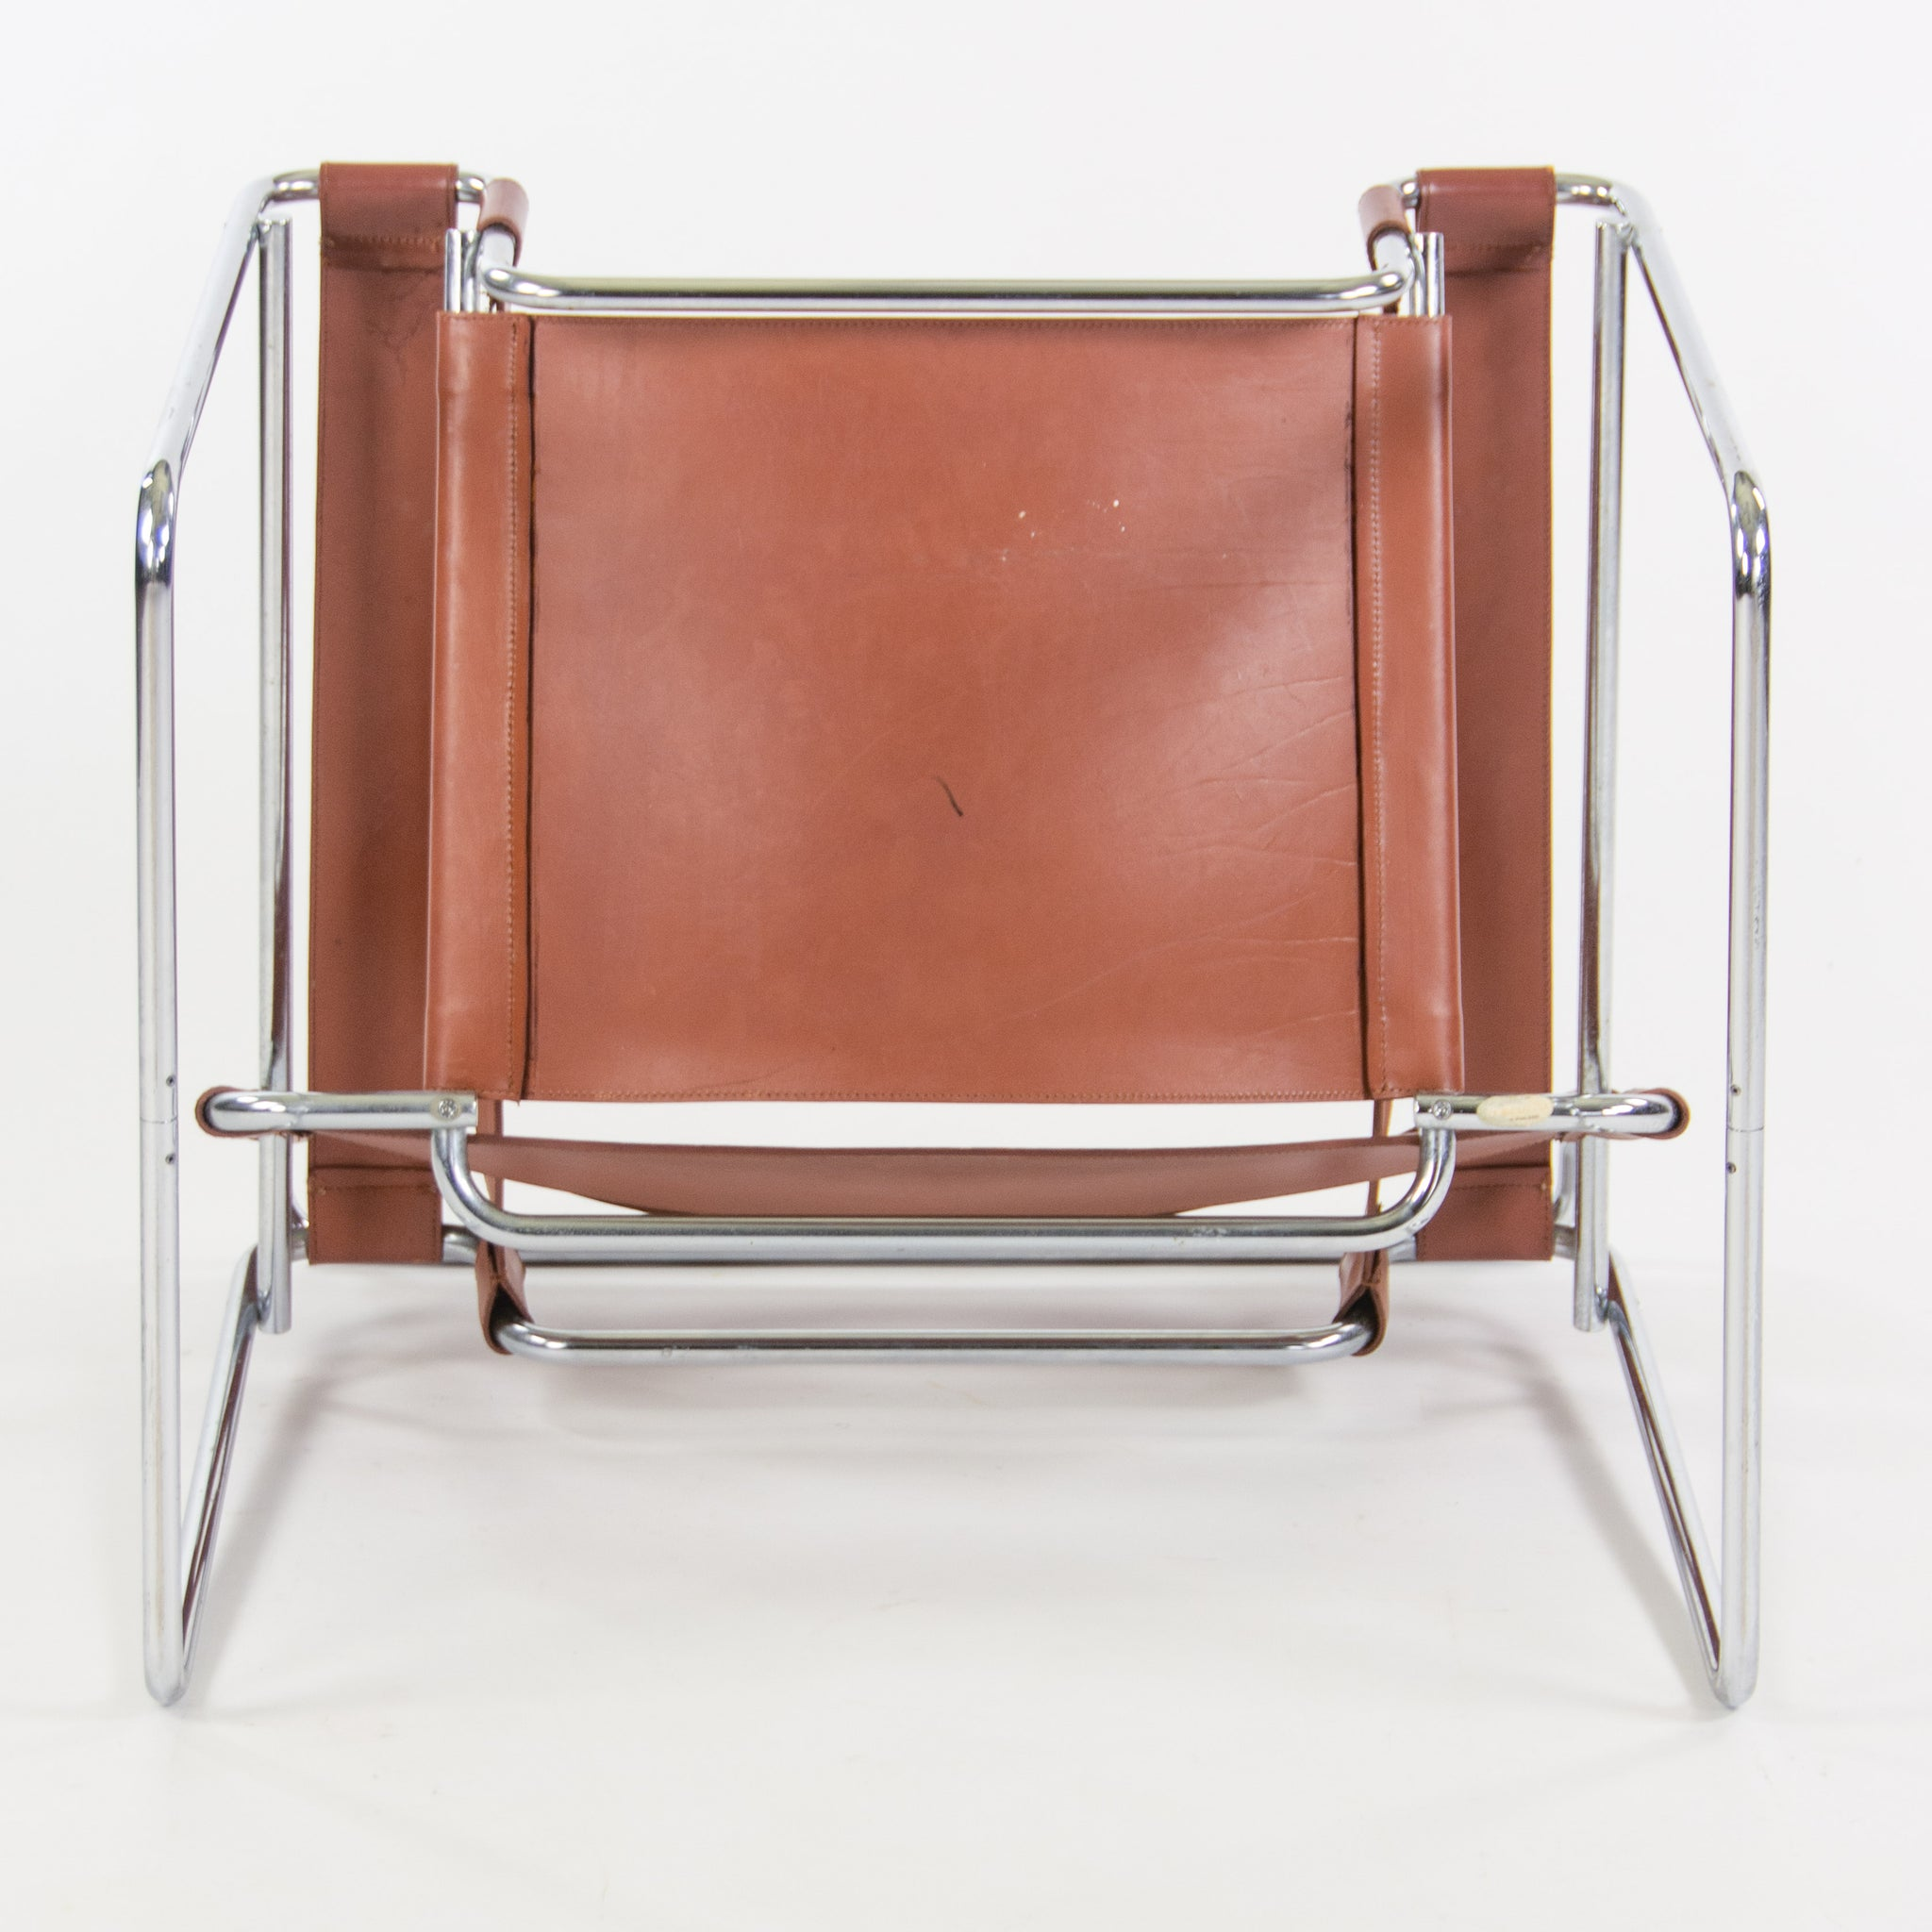 Early Gavina Knoll Stendig Marcel Breuer Wassily Chair B3 Brown Leather Marked